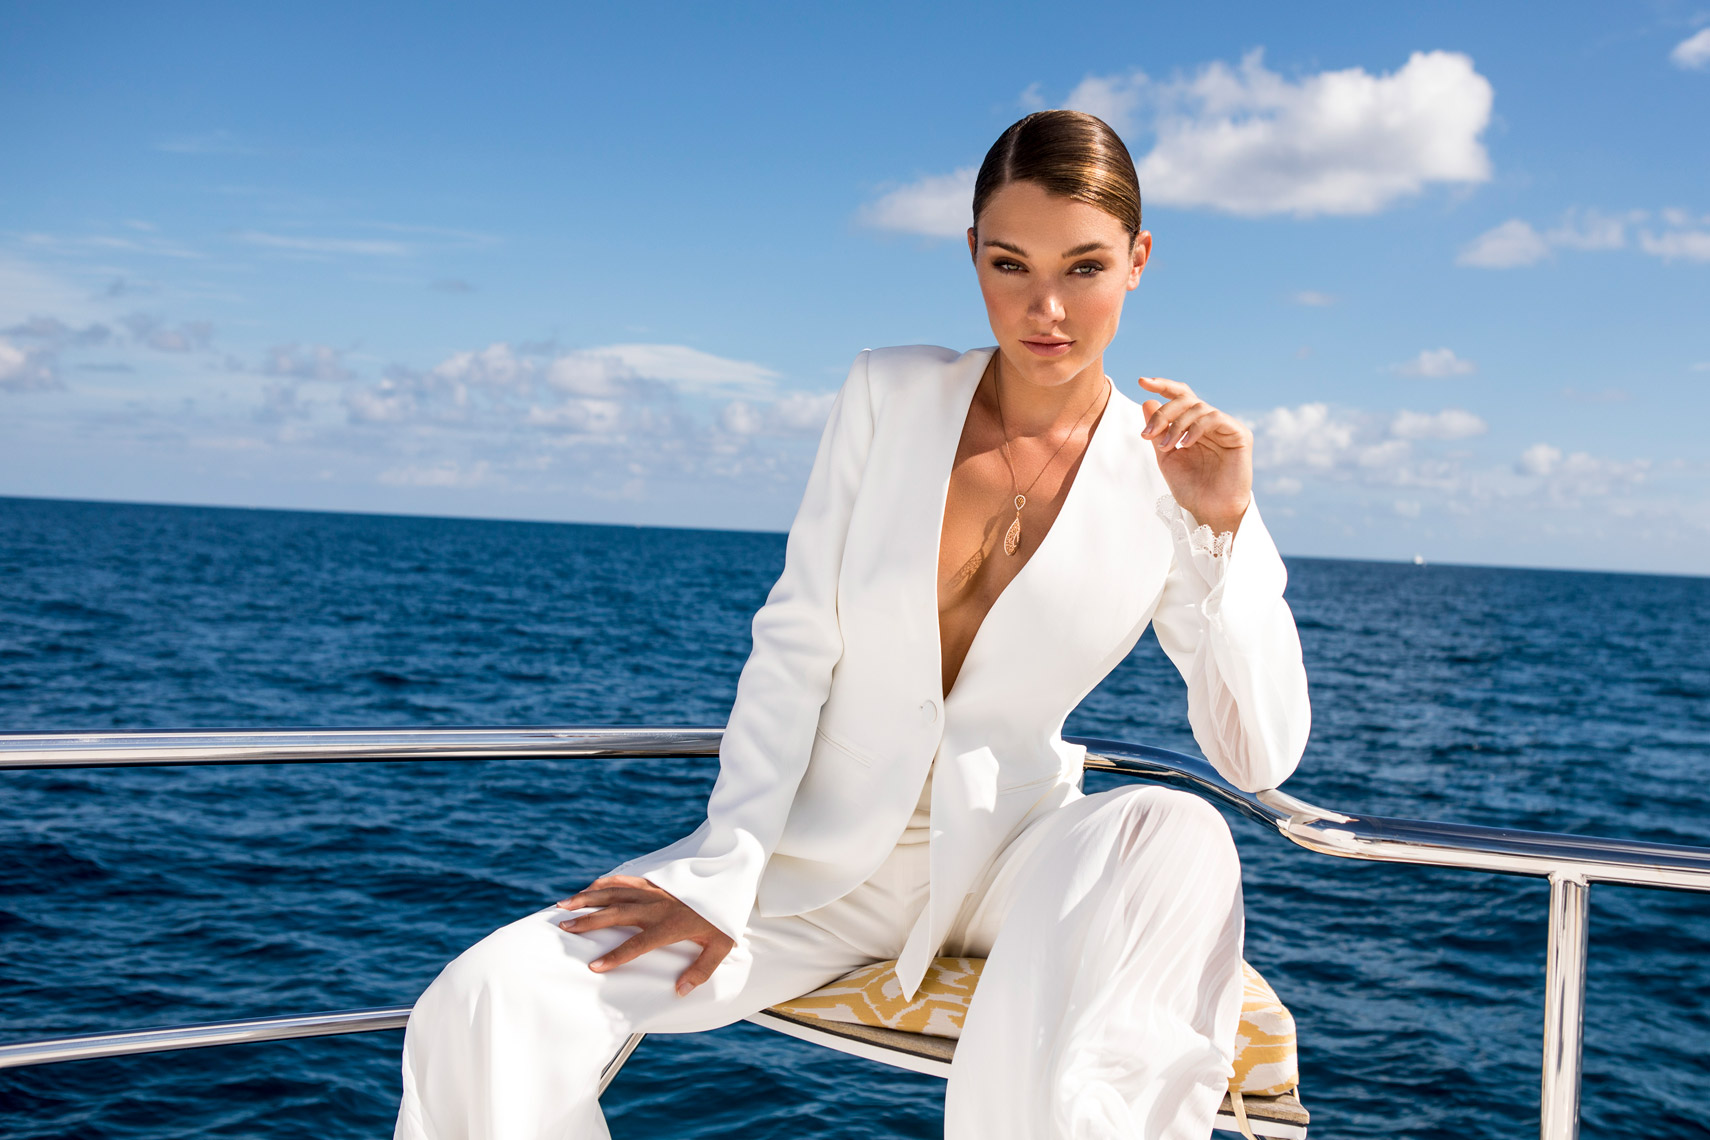 Nautical Nuances, Palm Beacher Magazine, Jupiter Magazine, Boca Life Magazine, Gold Coast Magazine, Ft. Lauderdale Magazine, Nicole Volfova, Ella Ayalon, Elite Model, Editorial, Beauty, Fashion, Ian Jacob, Ian Jacob Photography, Fashion Editorial, Yacht, Boat